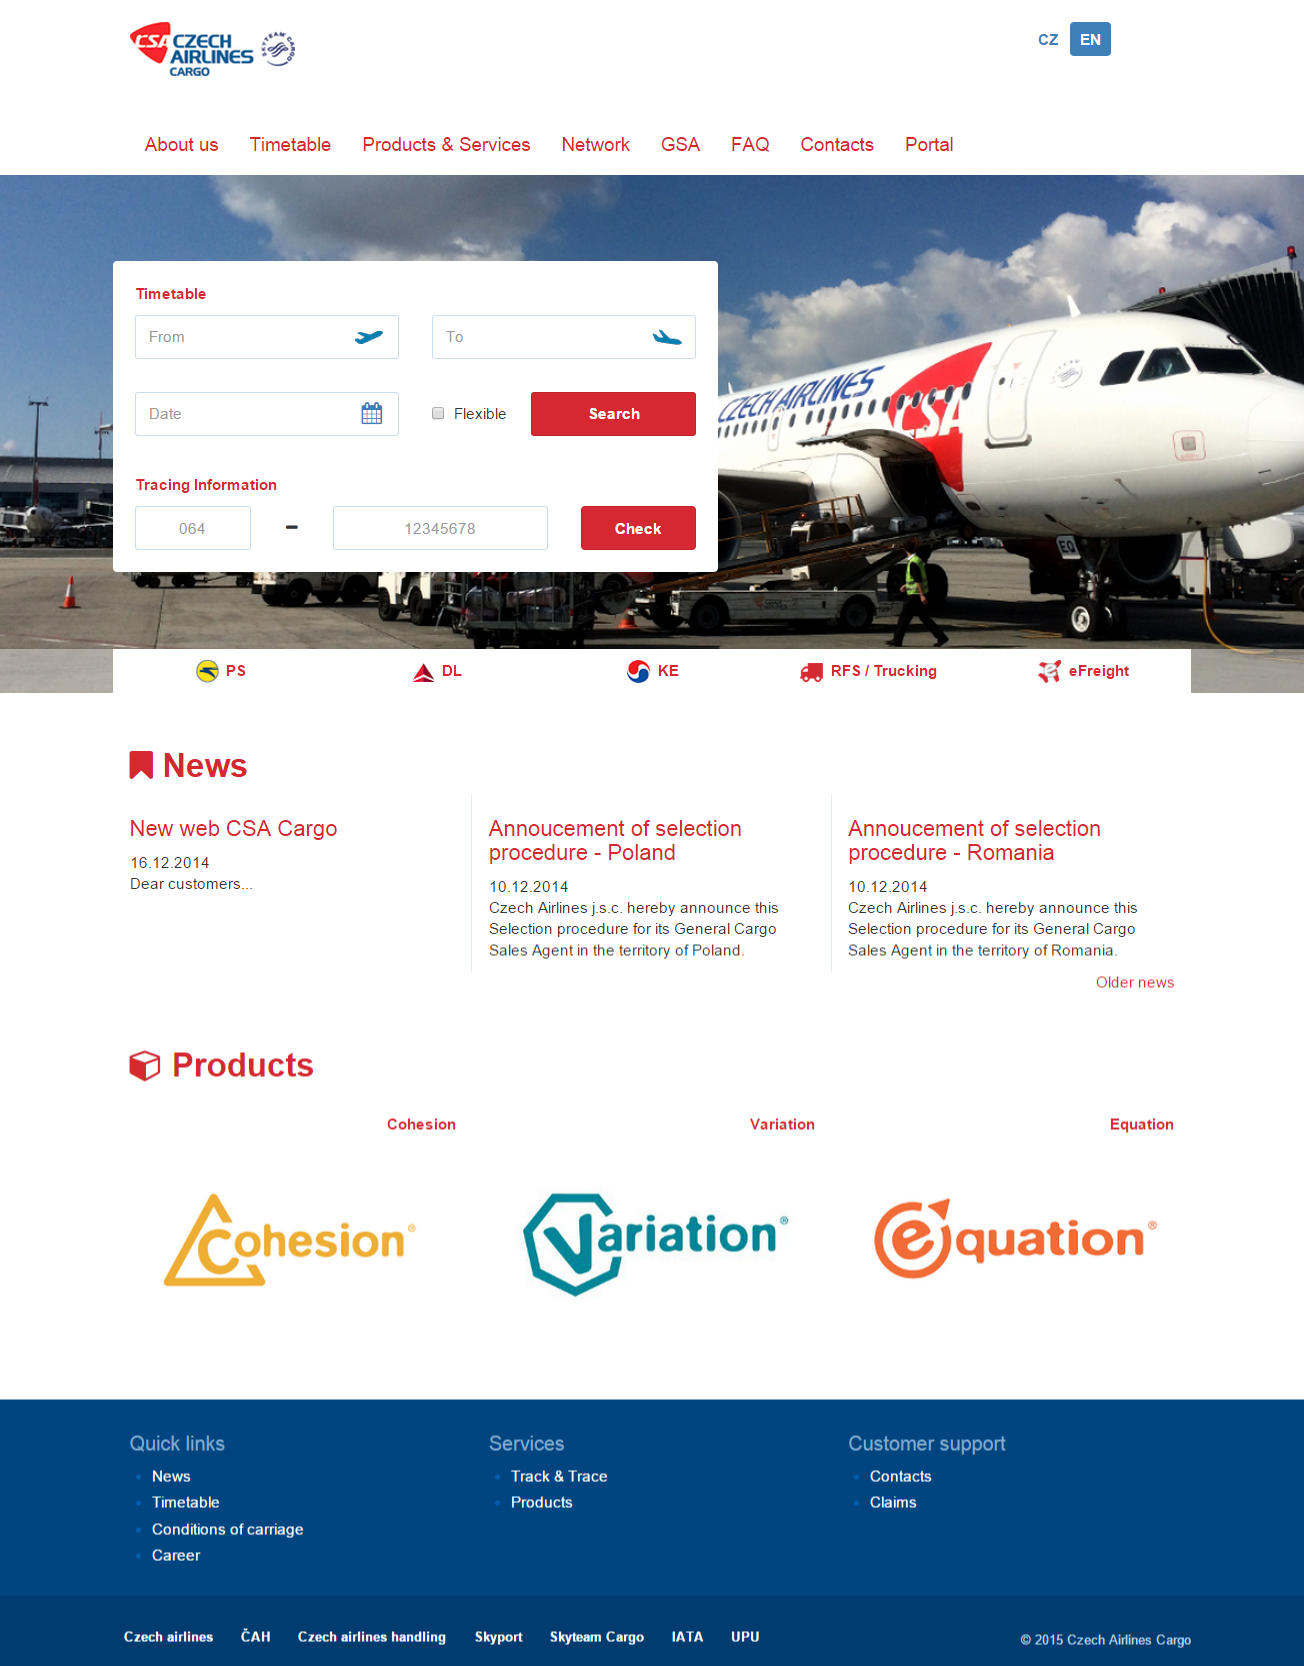 ČSA Cargo website